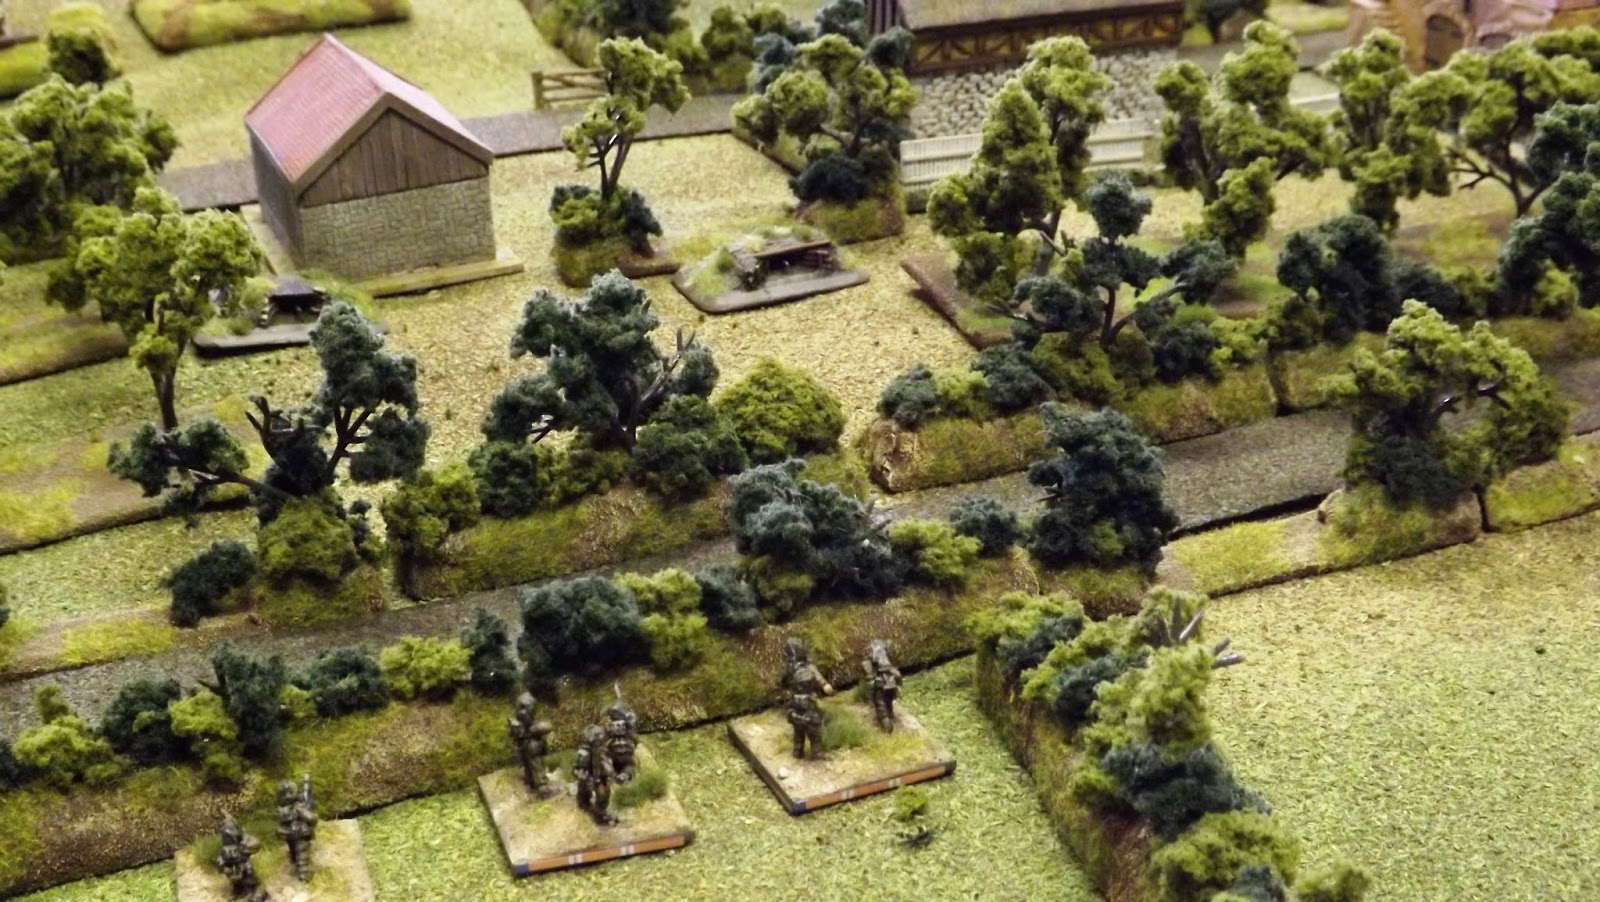 The Welsh Guards infantry come under withering machine gun fire across the lane